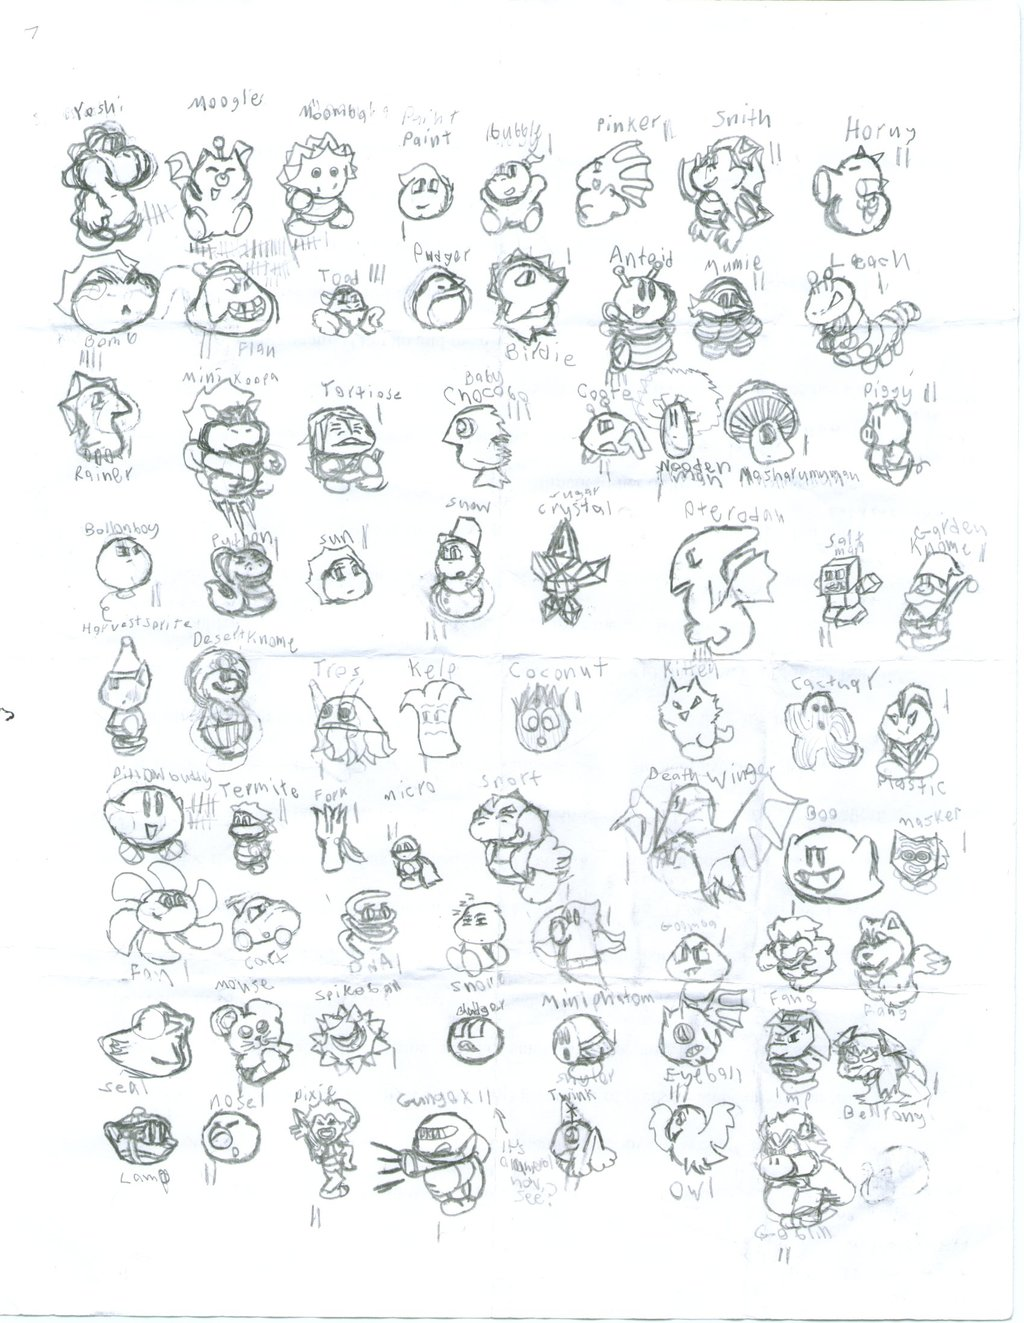 2002: All the Critters